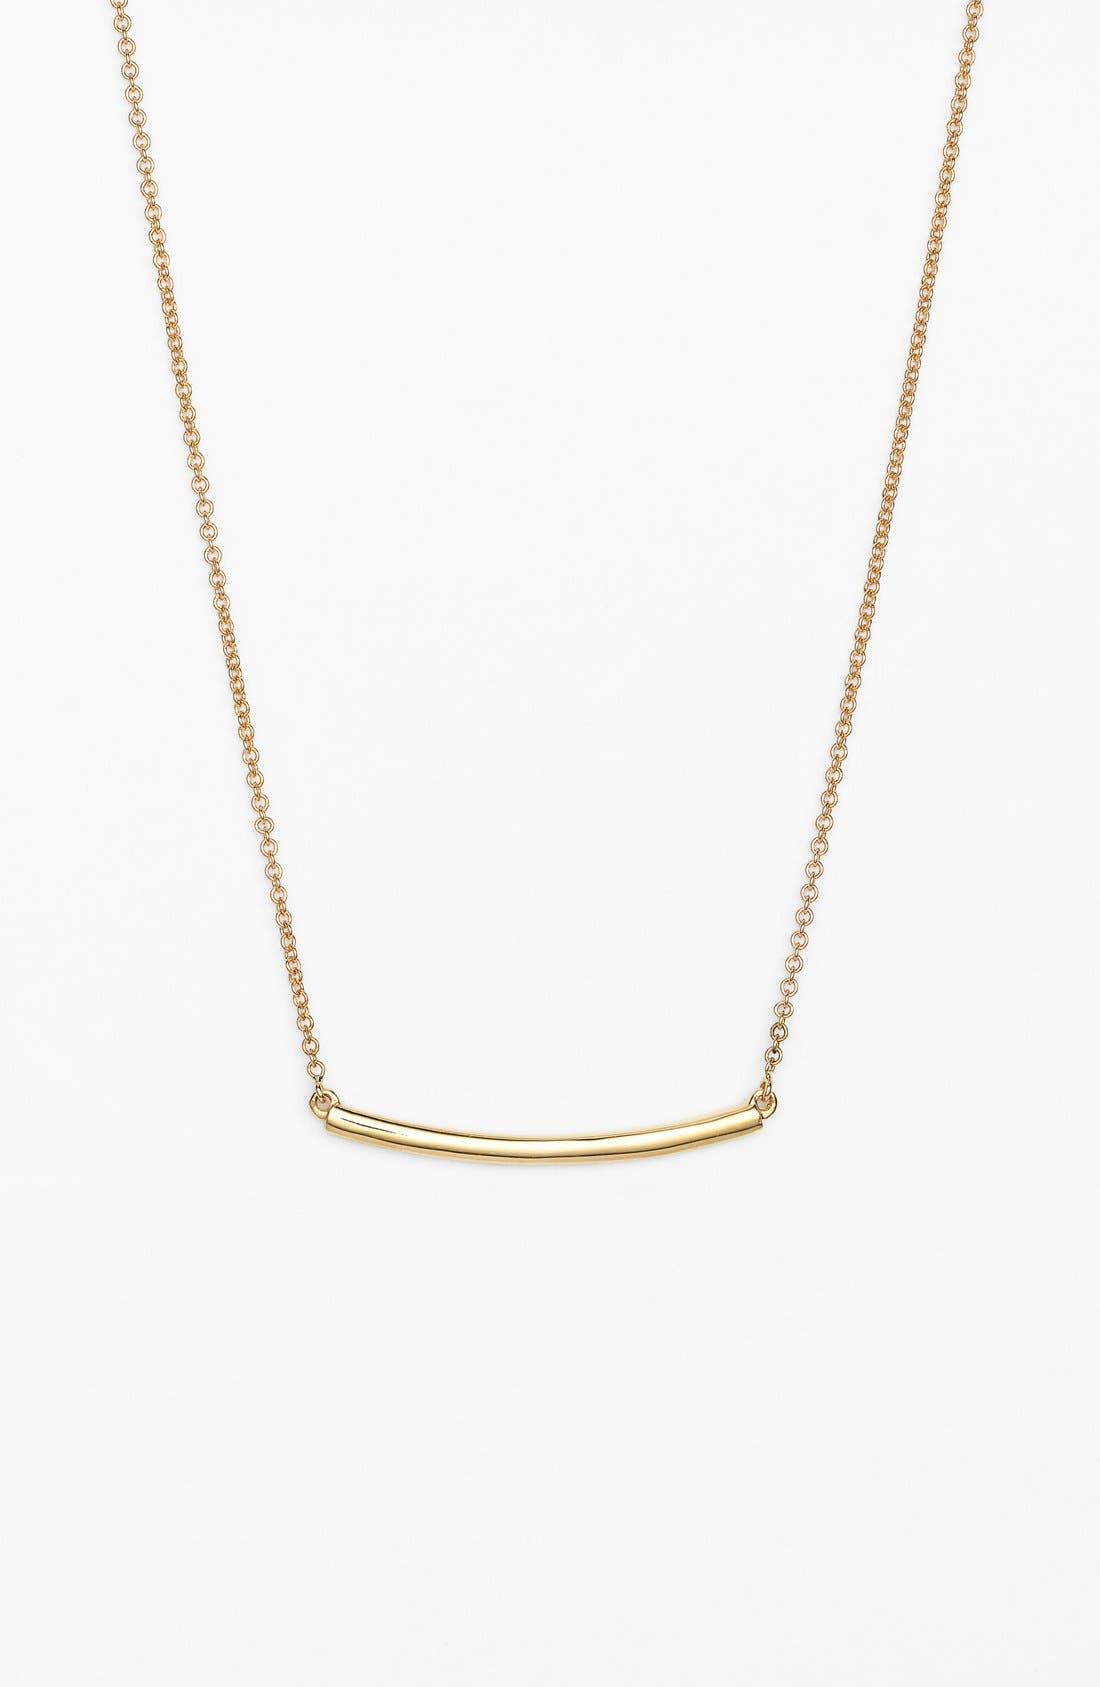 Bar Pendant Necklace,                         Main,                         color, YELLOW GOLD